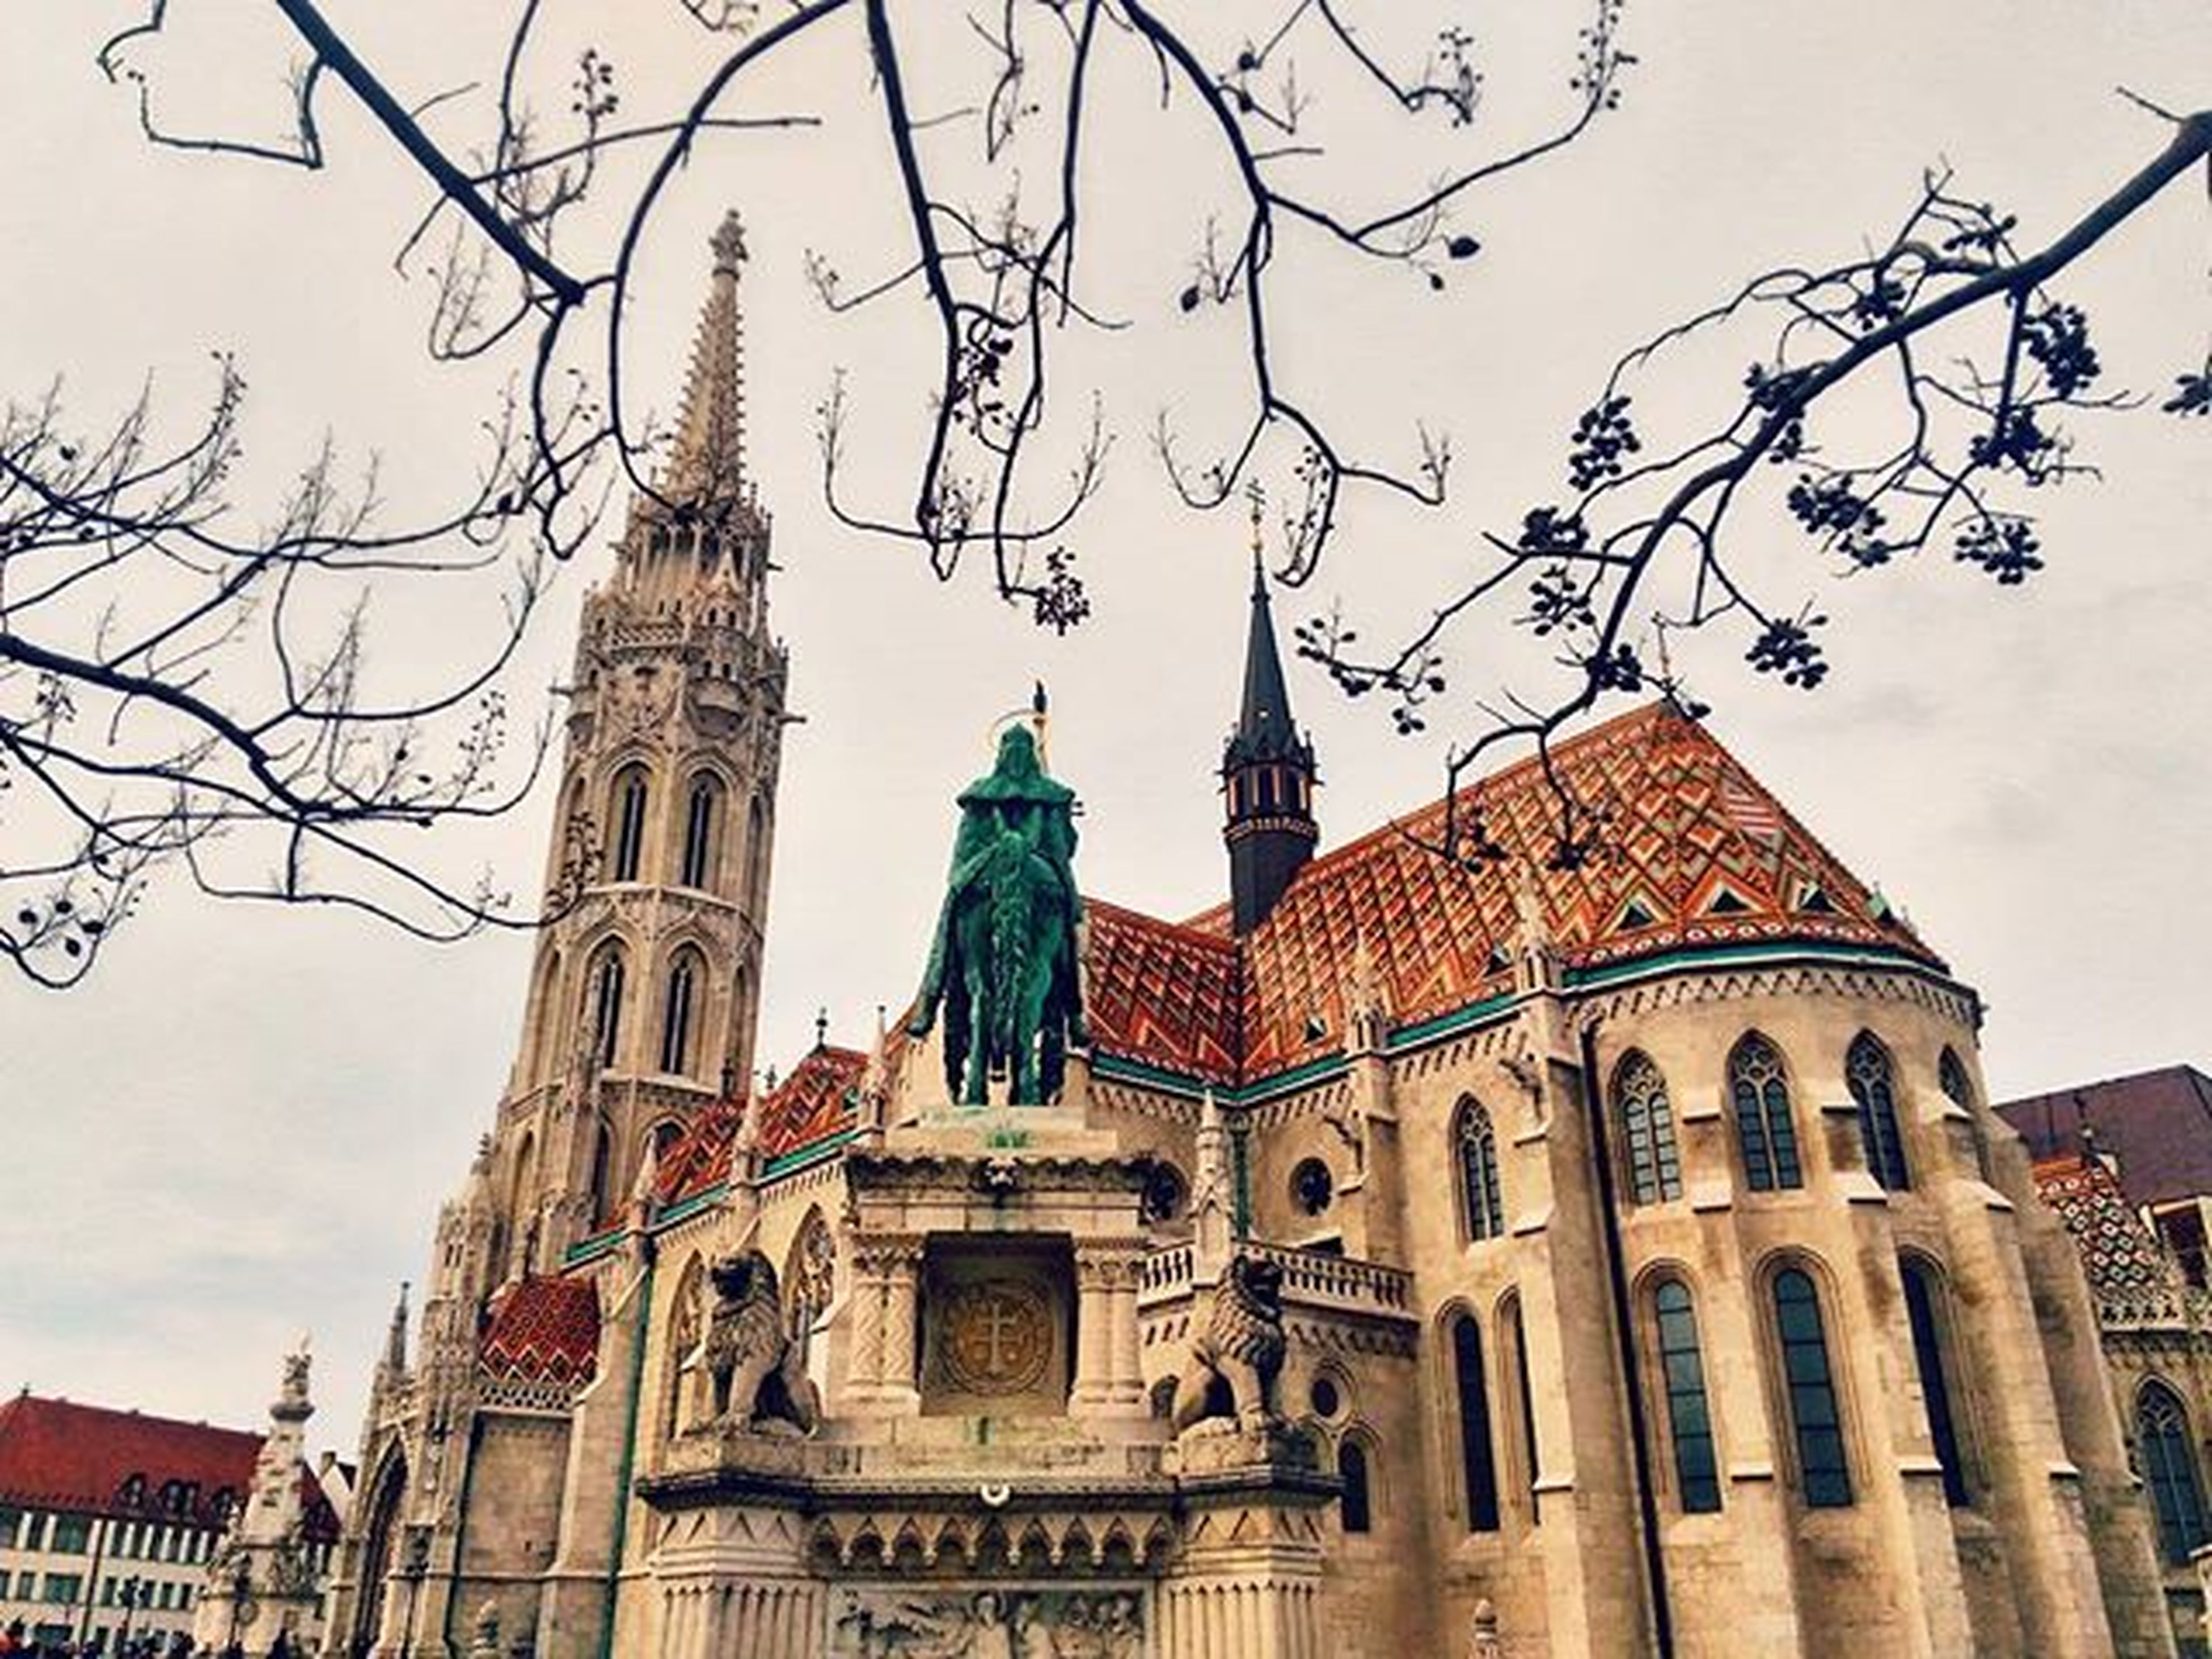 architecture, building exterior, built structure, low angle view, church, place of worship, bare tree, religion, spirituality, sky, city, cathedral, travel destinations, tower, branch, history, tree, famous place